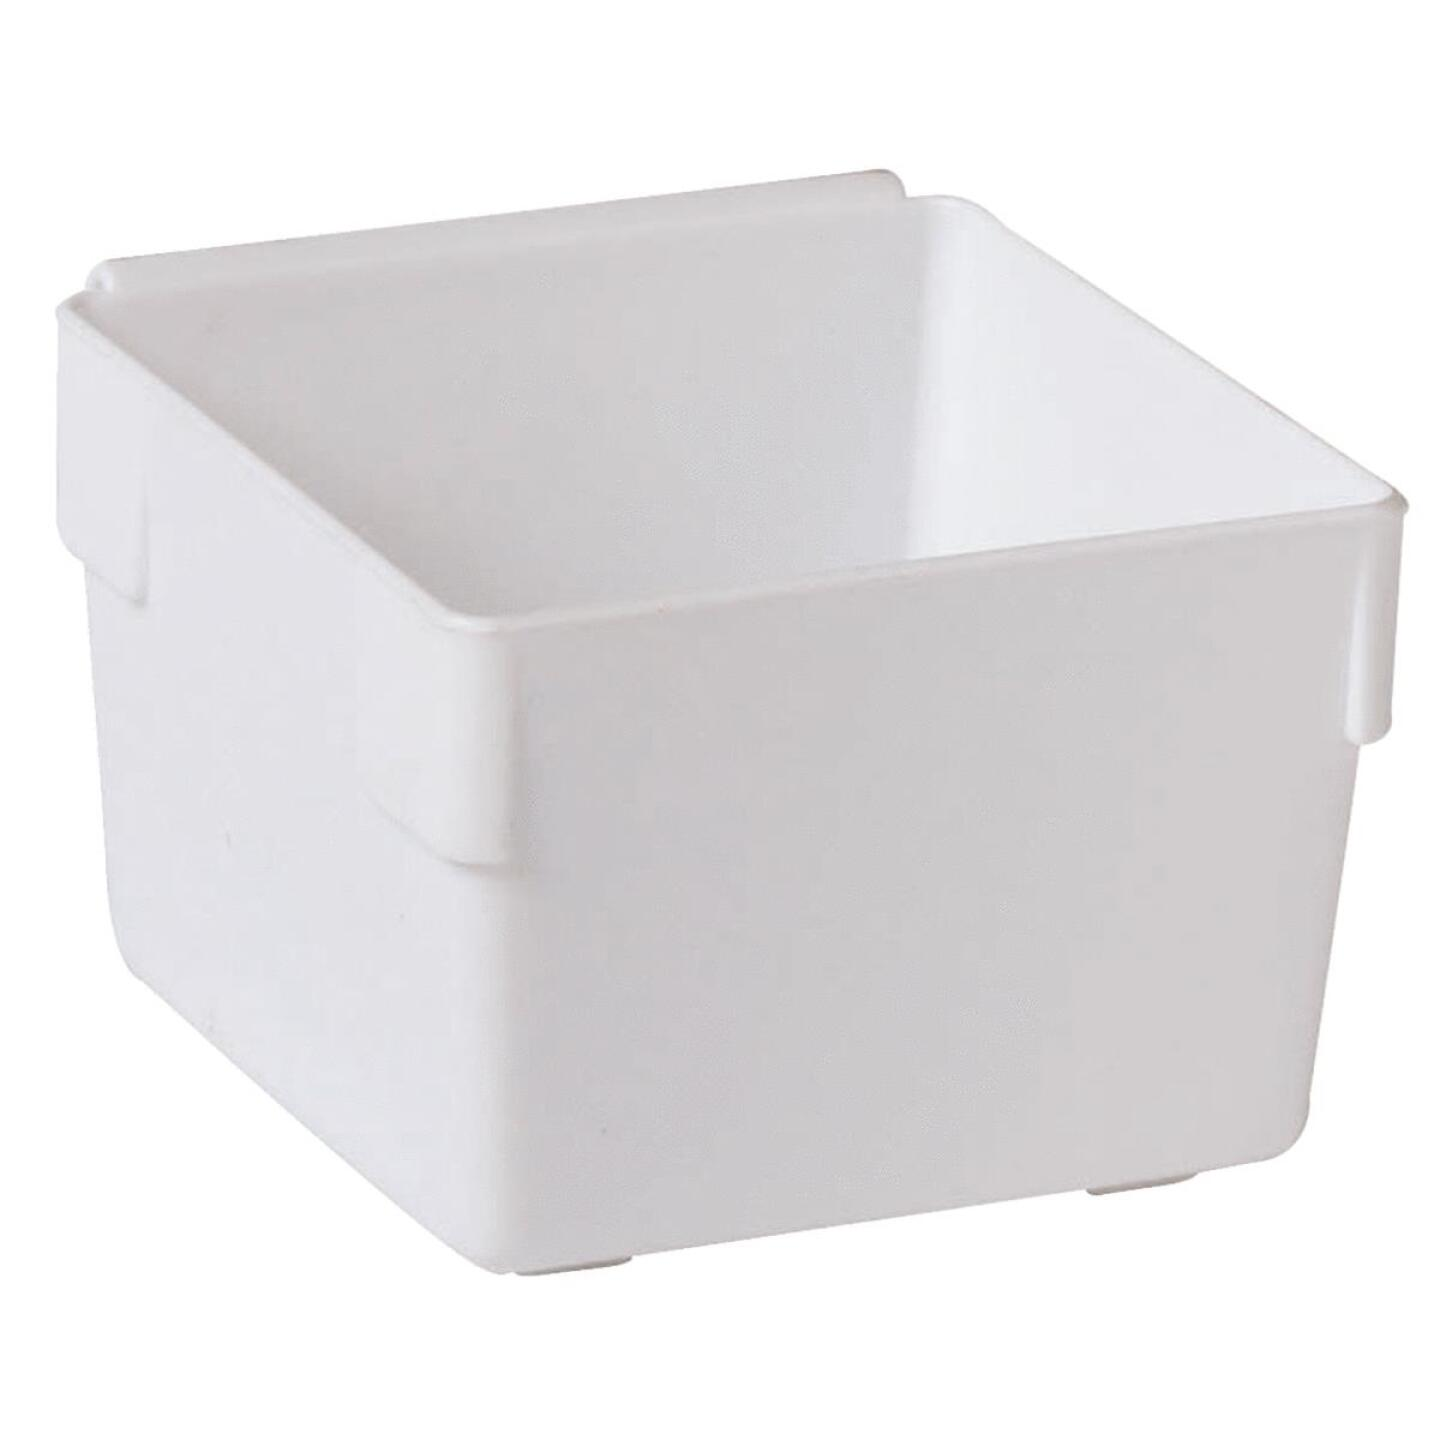 Rubbermaid 3 In. x 3 In. x 2 In. White Drawer Organizer Tray Image 4